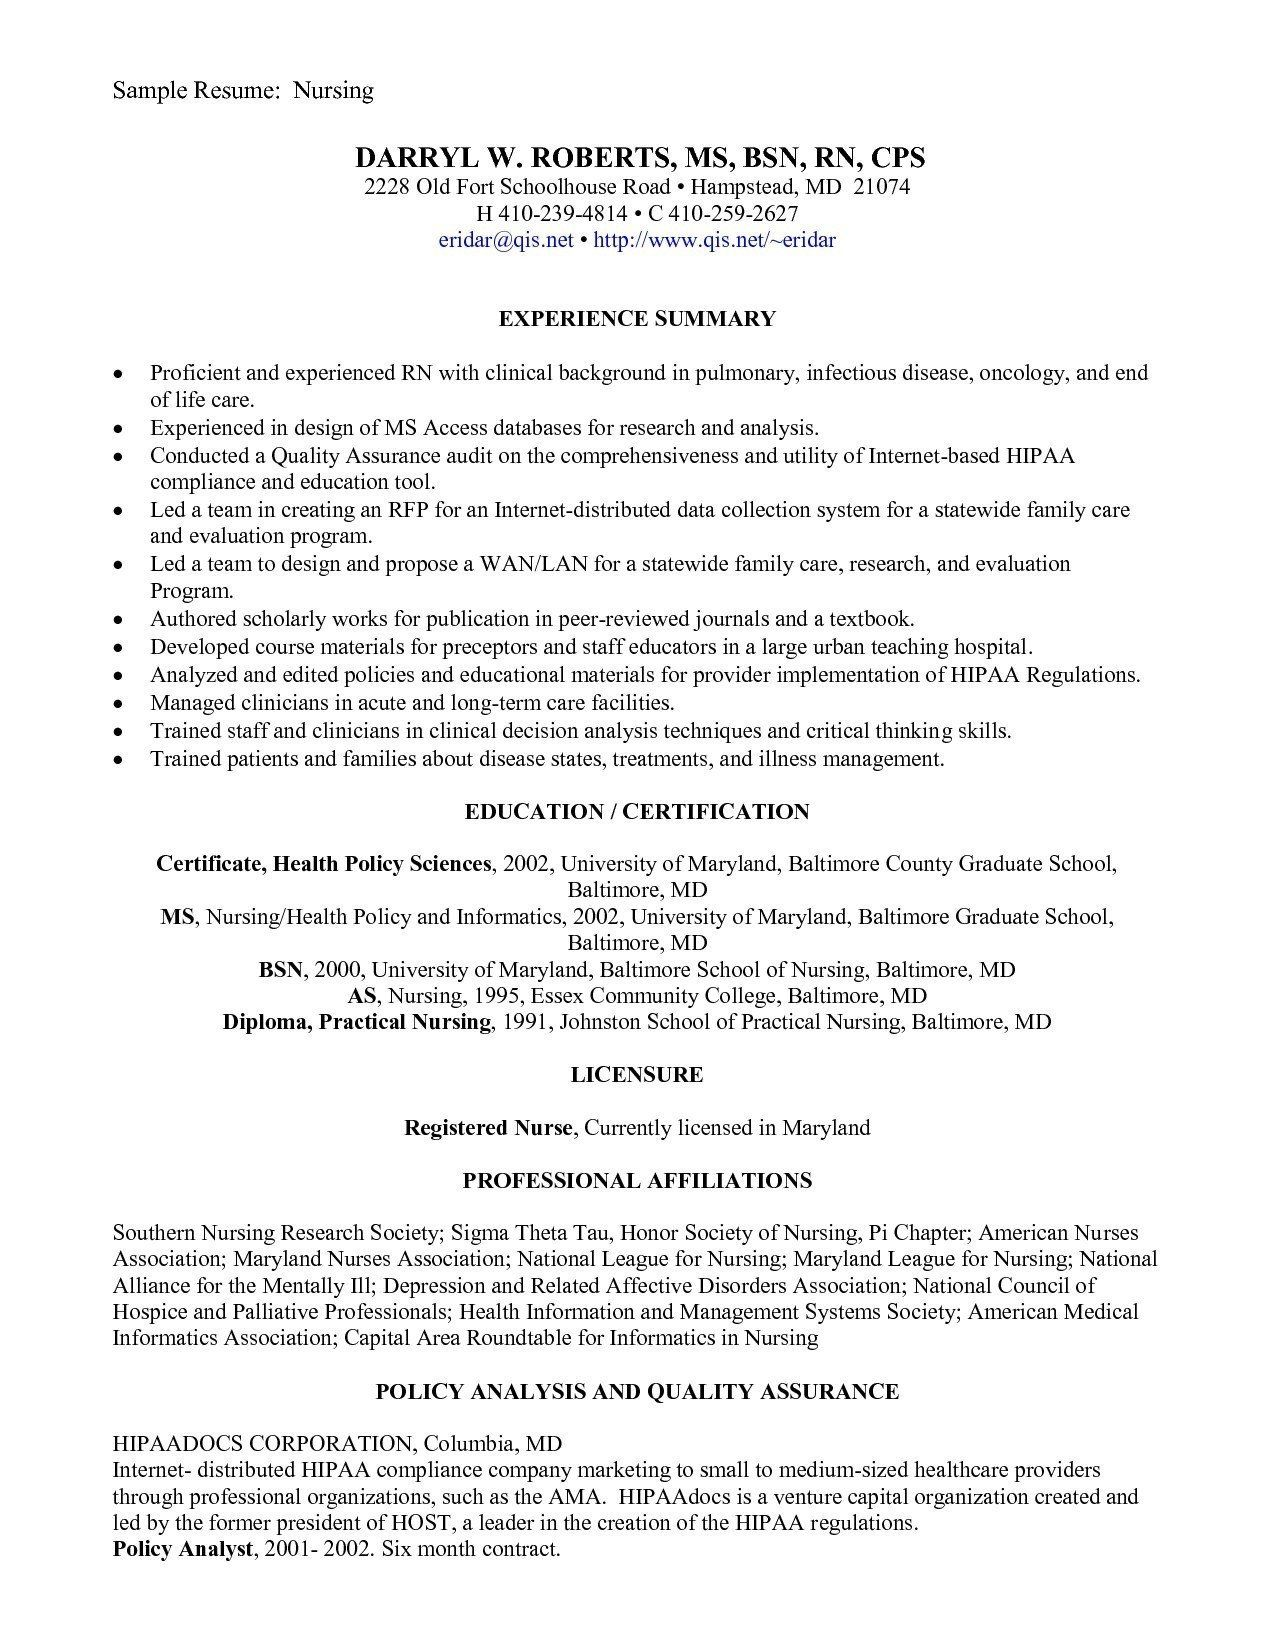 32 Elegant New Graduate Nurse Resume in 2020 Nursing